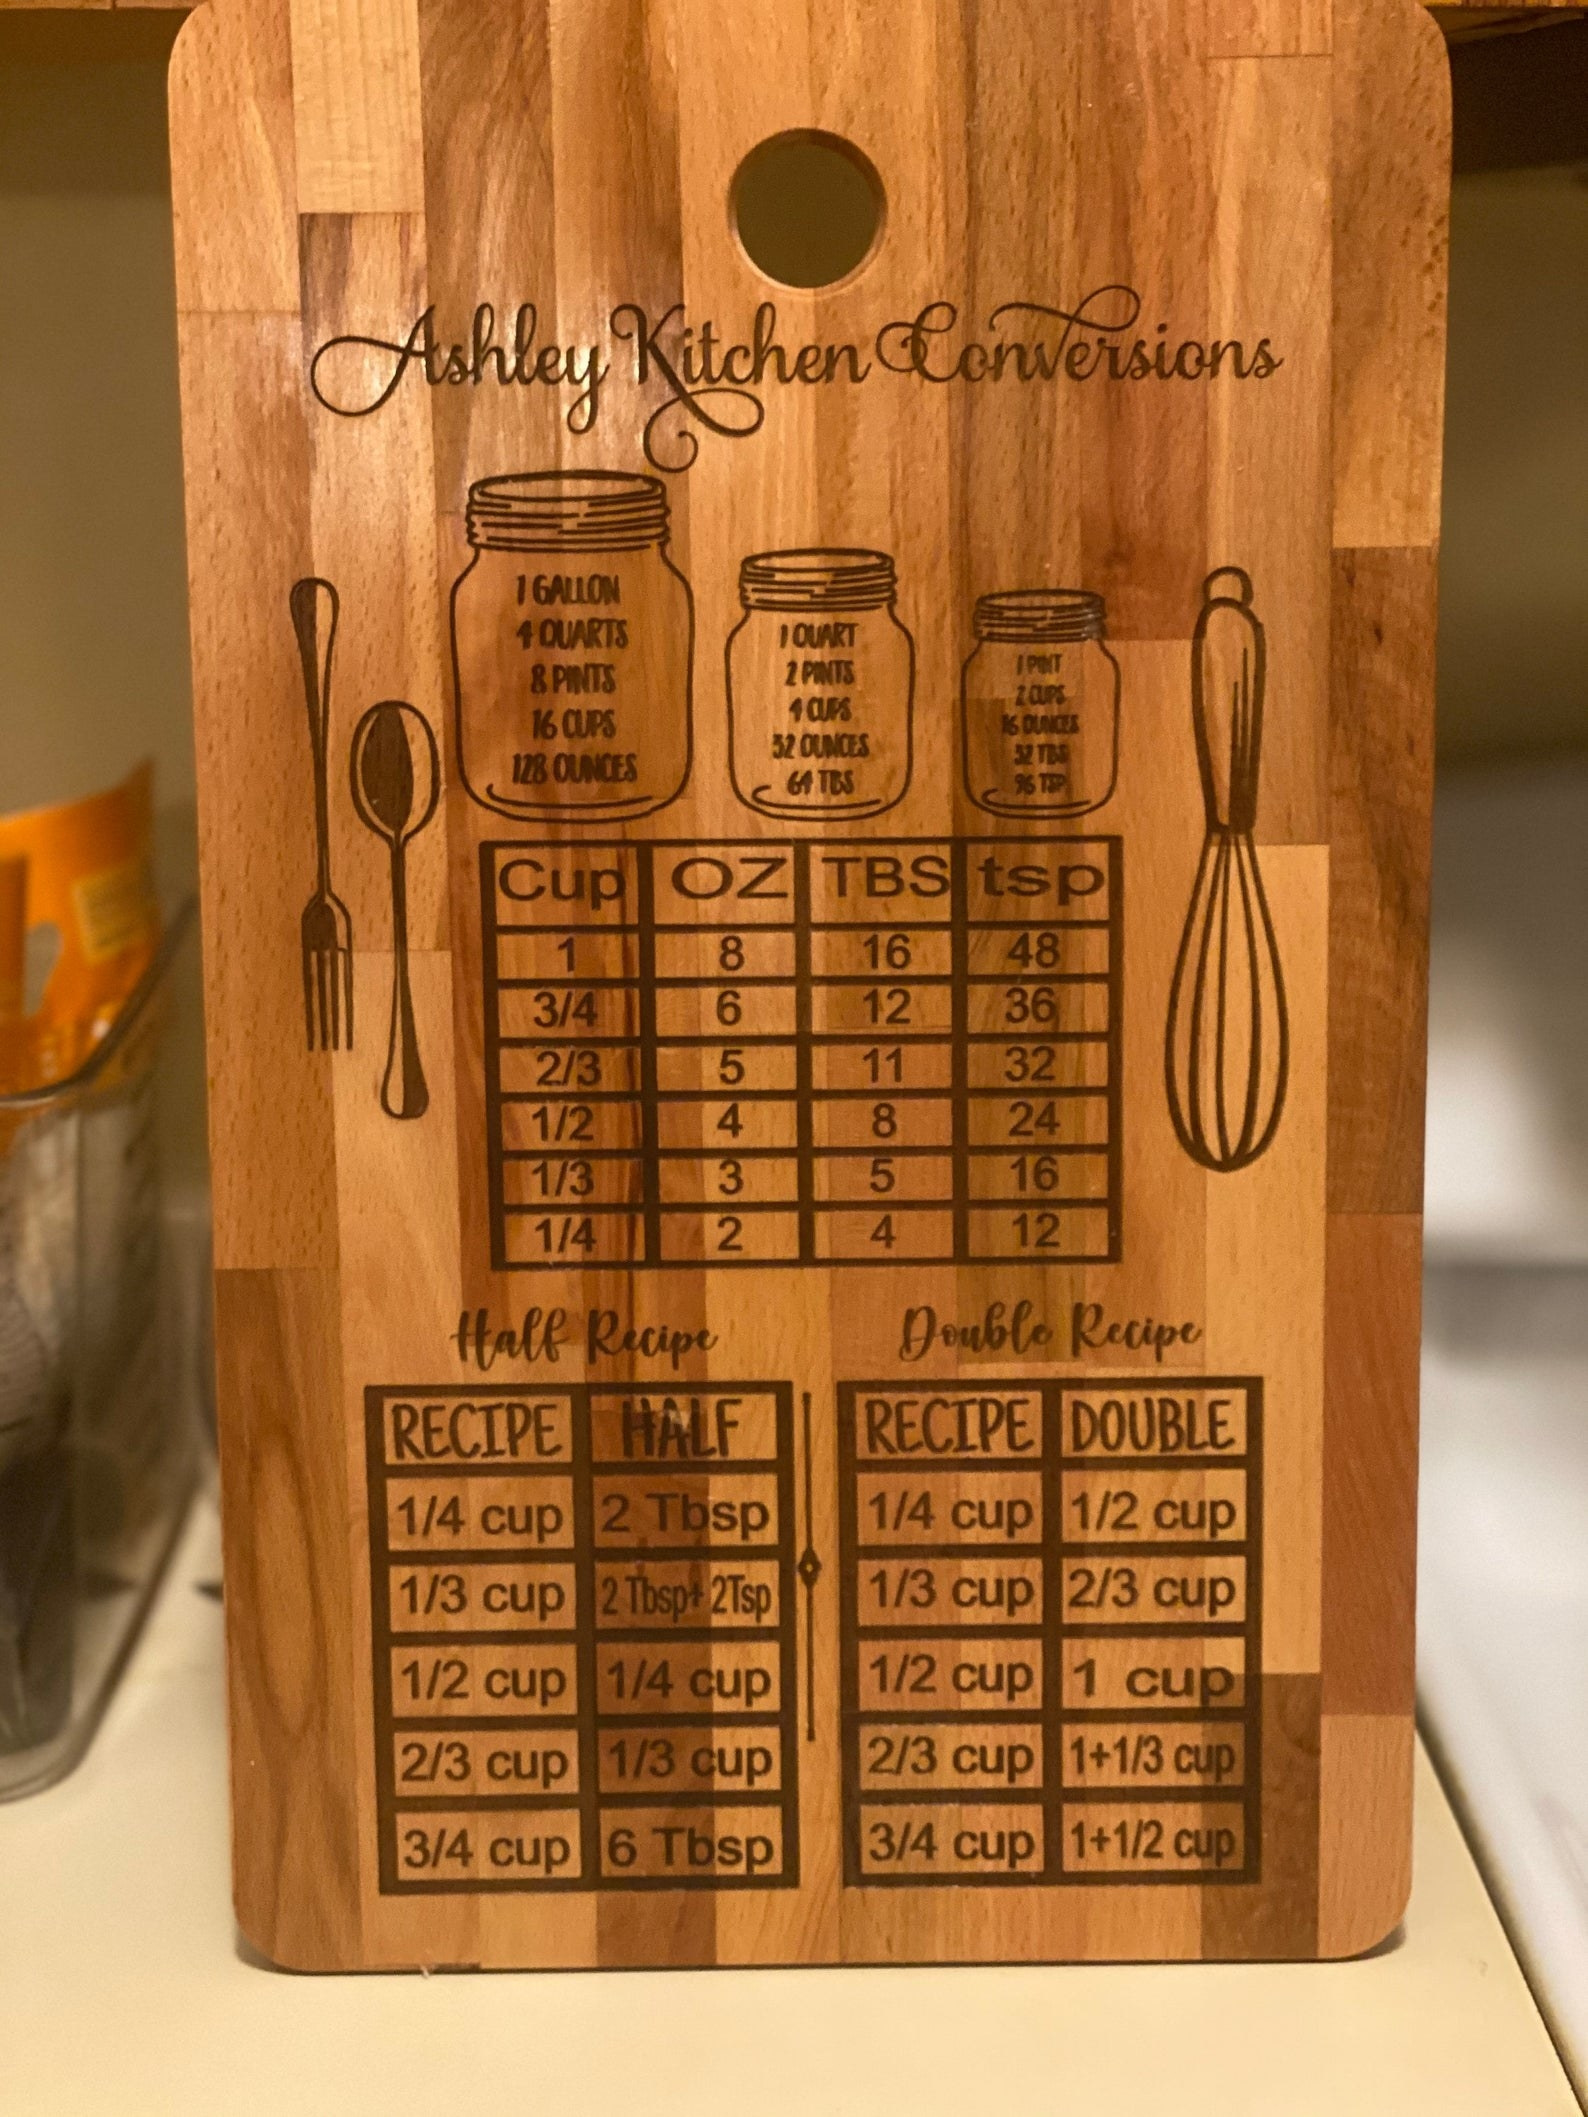 A wood cutting board depicting liquid measurements, cup, ounce, tablespoon, and teaspoon conversions, and instructions for halving and doubling recipes